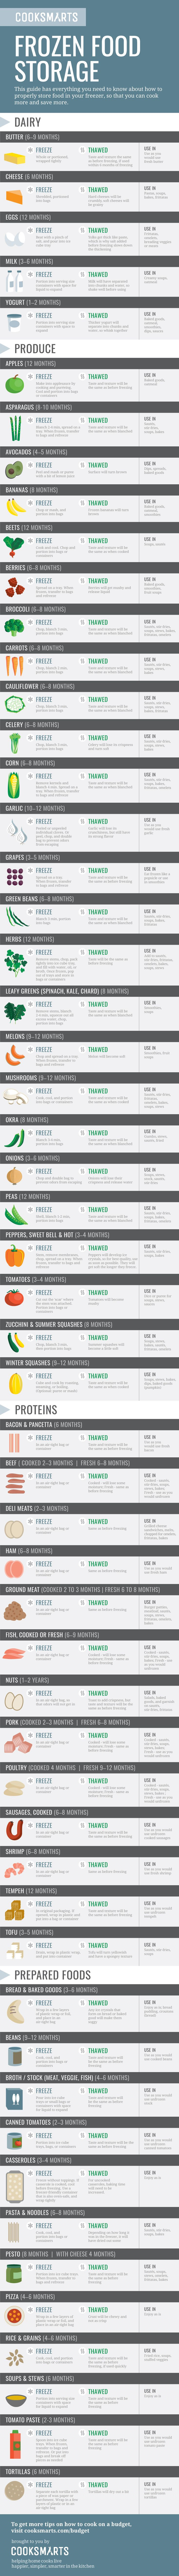 The Ultimate Guide to Frozen Food Storage and Shelf Life via @CookSmarts #infographic #printable #cooking101